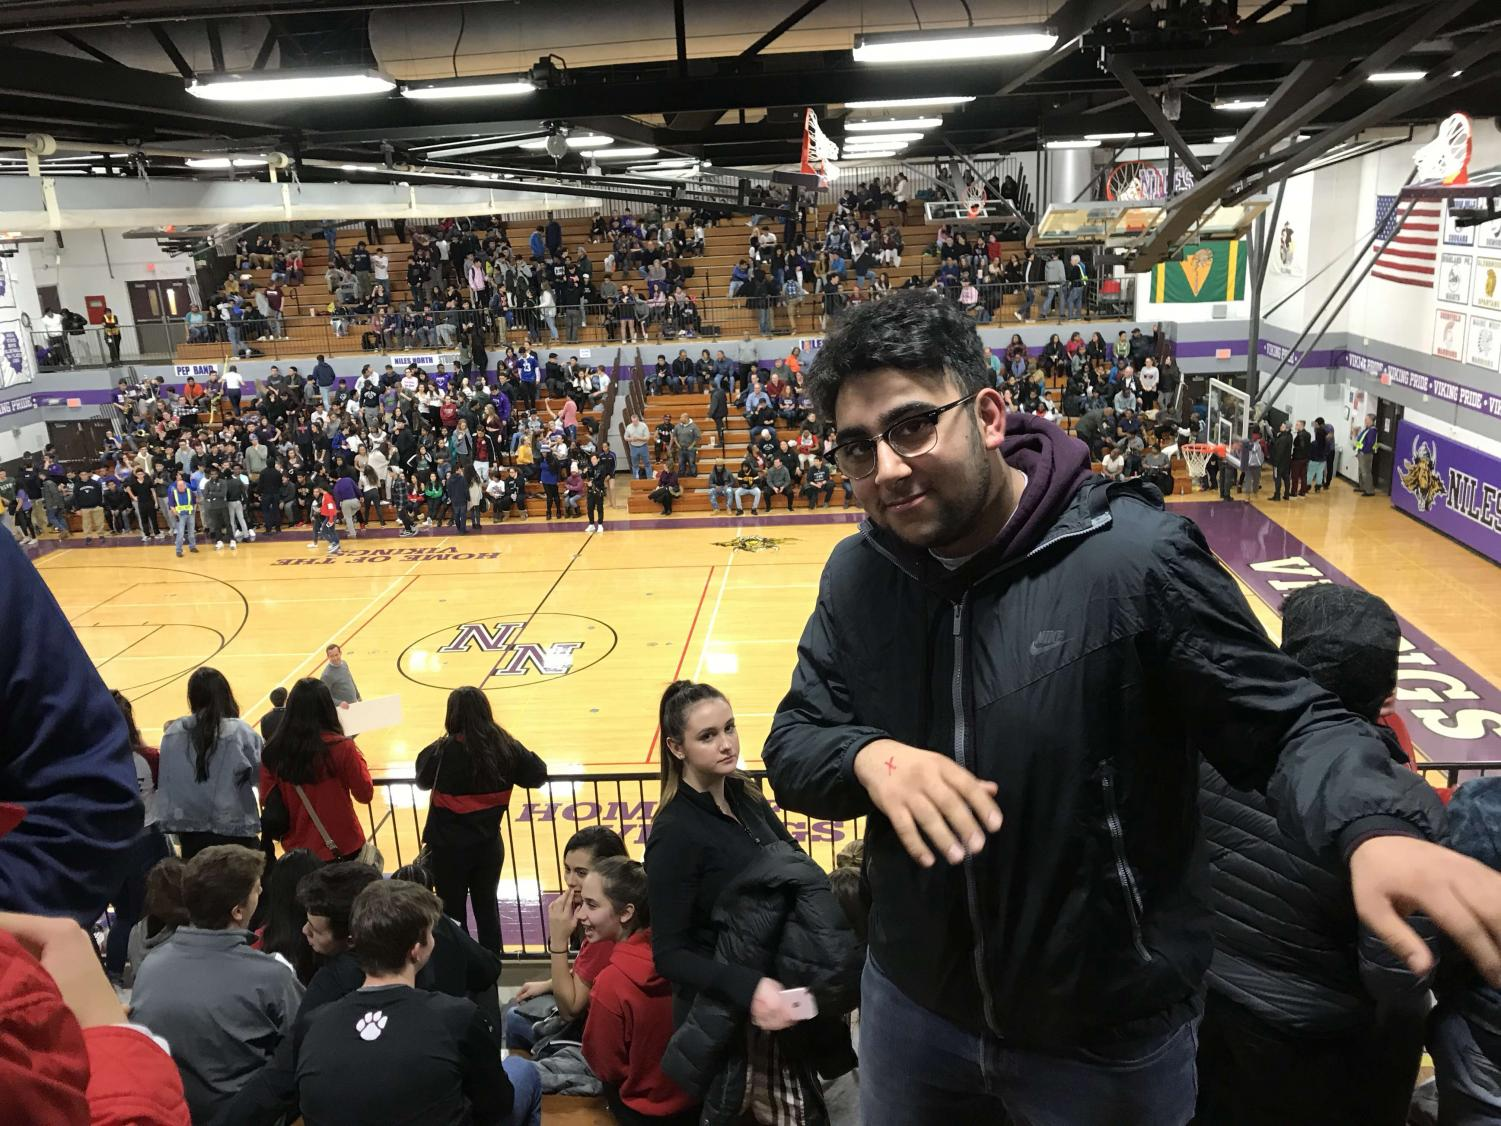 Senior Amir Shirsalimian is a fixture at Niles West sporting events.